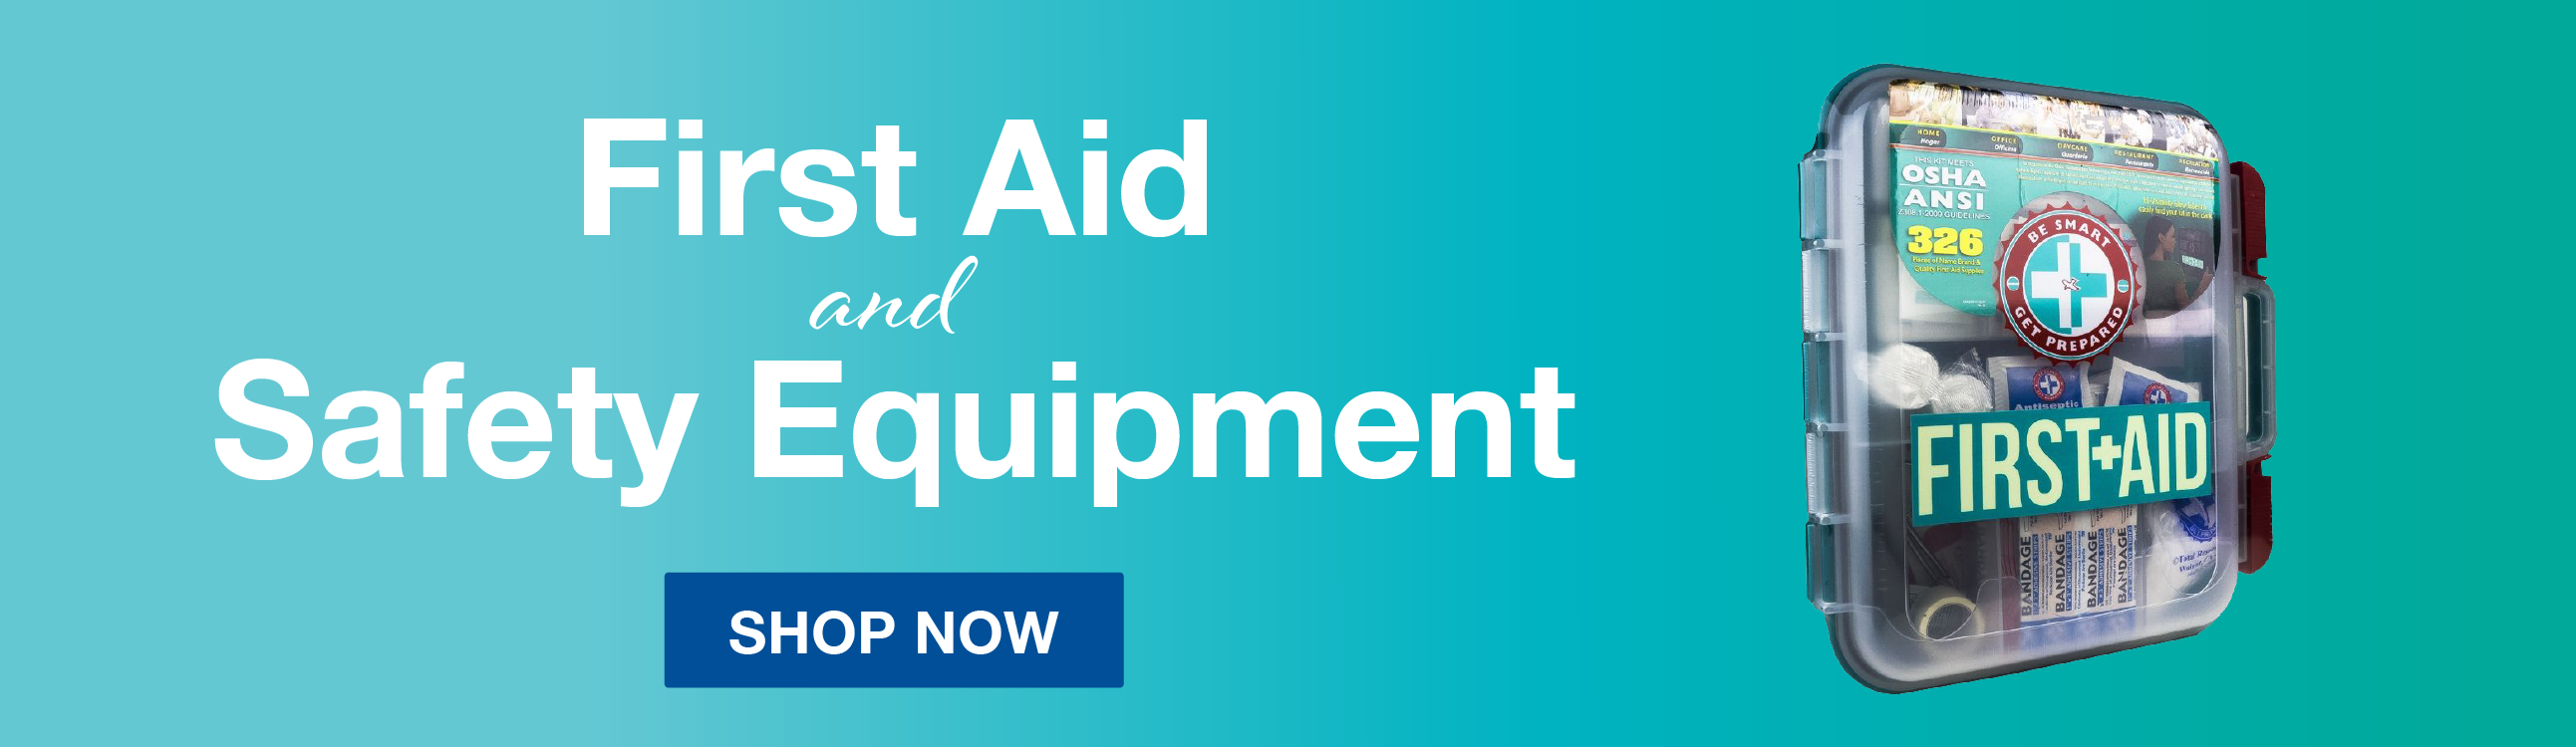 Shop First Aid & Safety Equipment